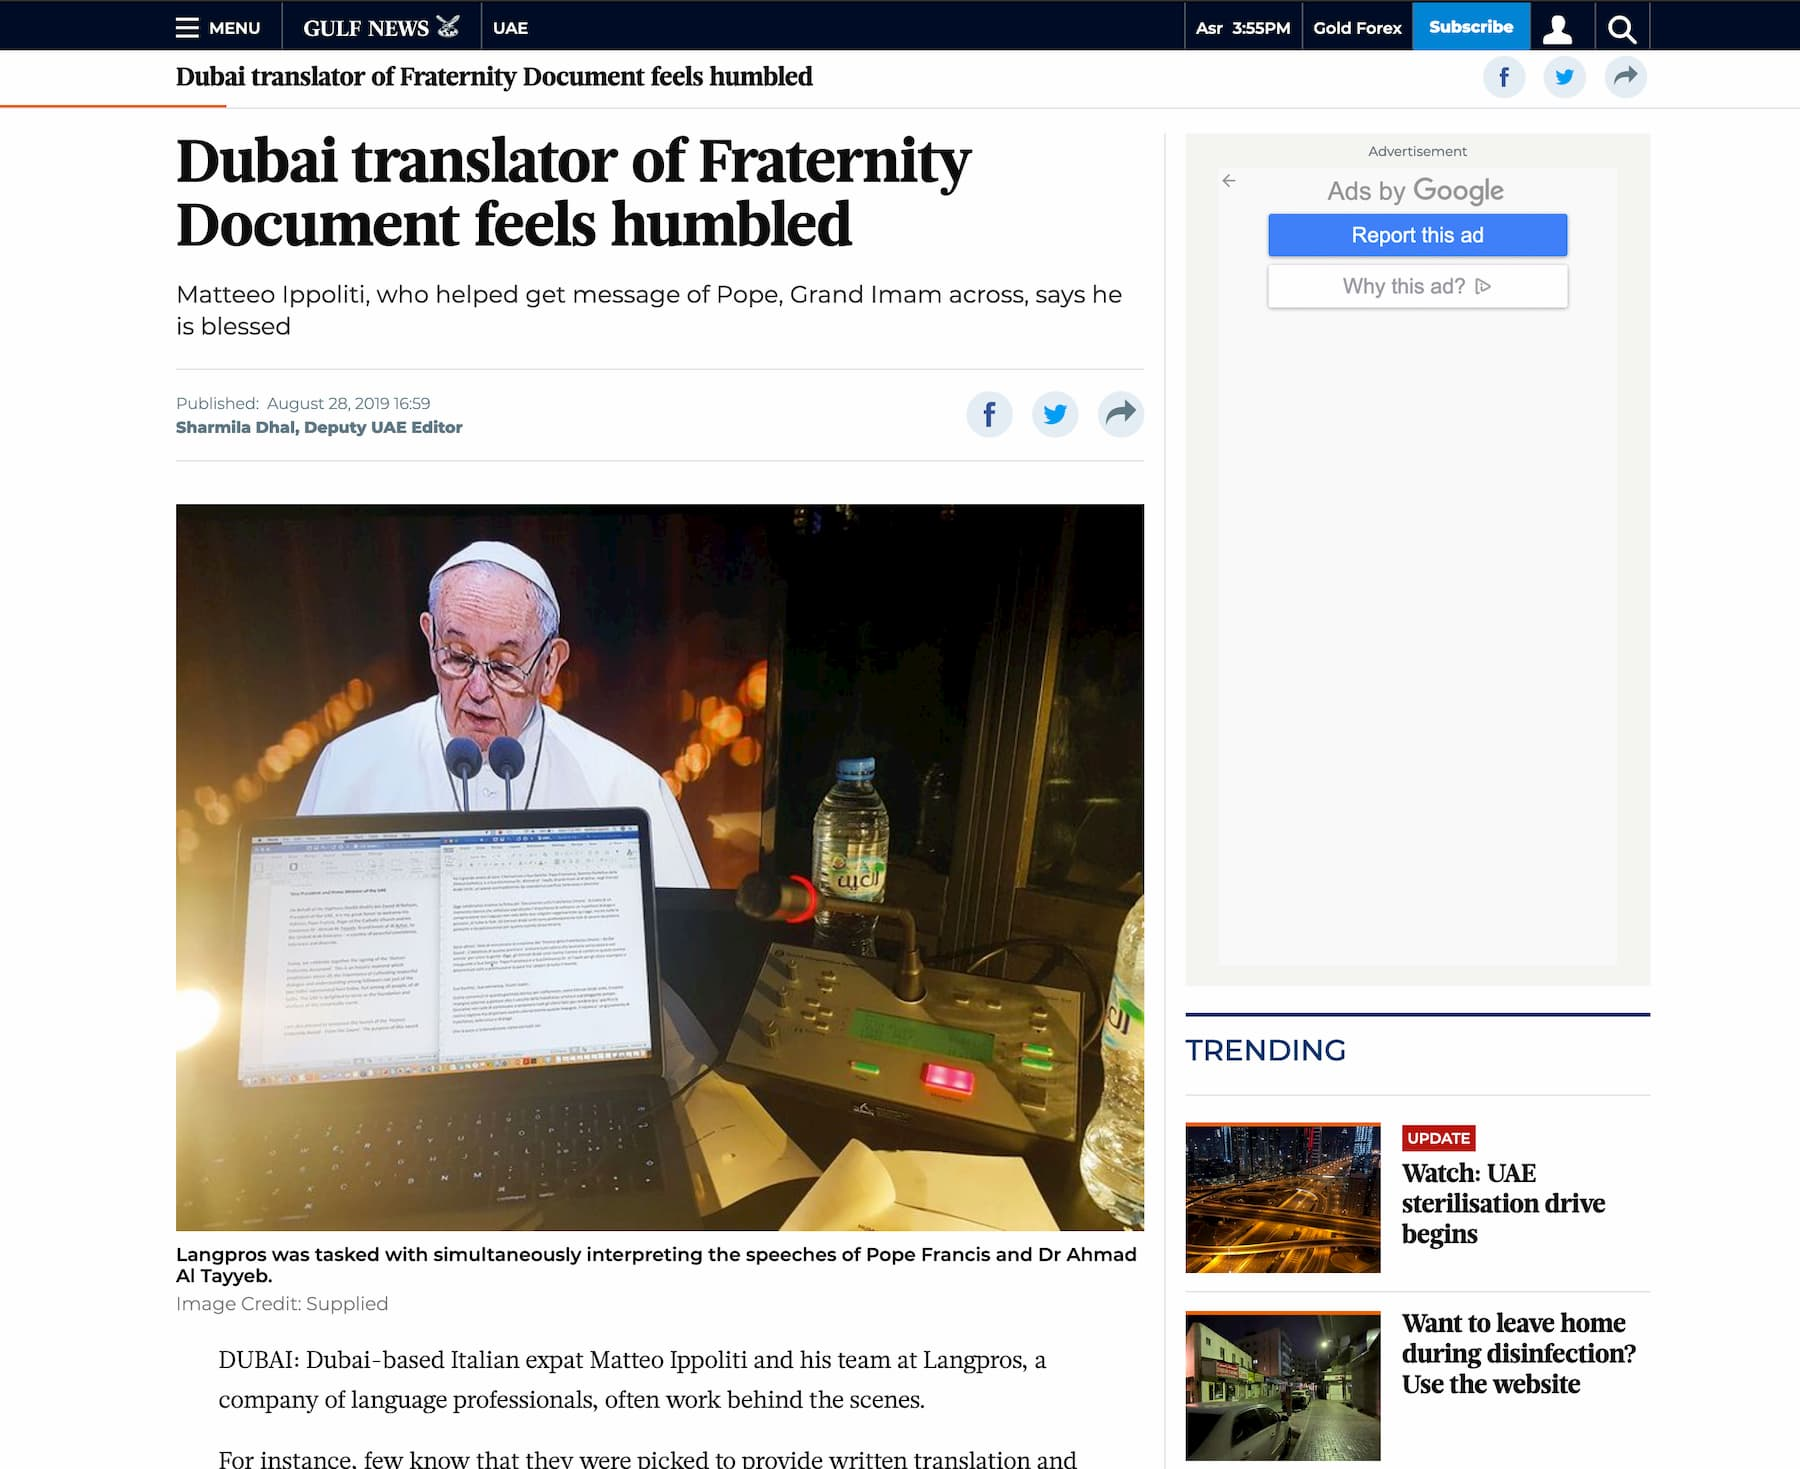 Dubai translator of Fraternity Document feels humbled